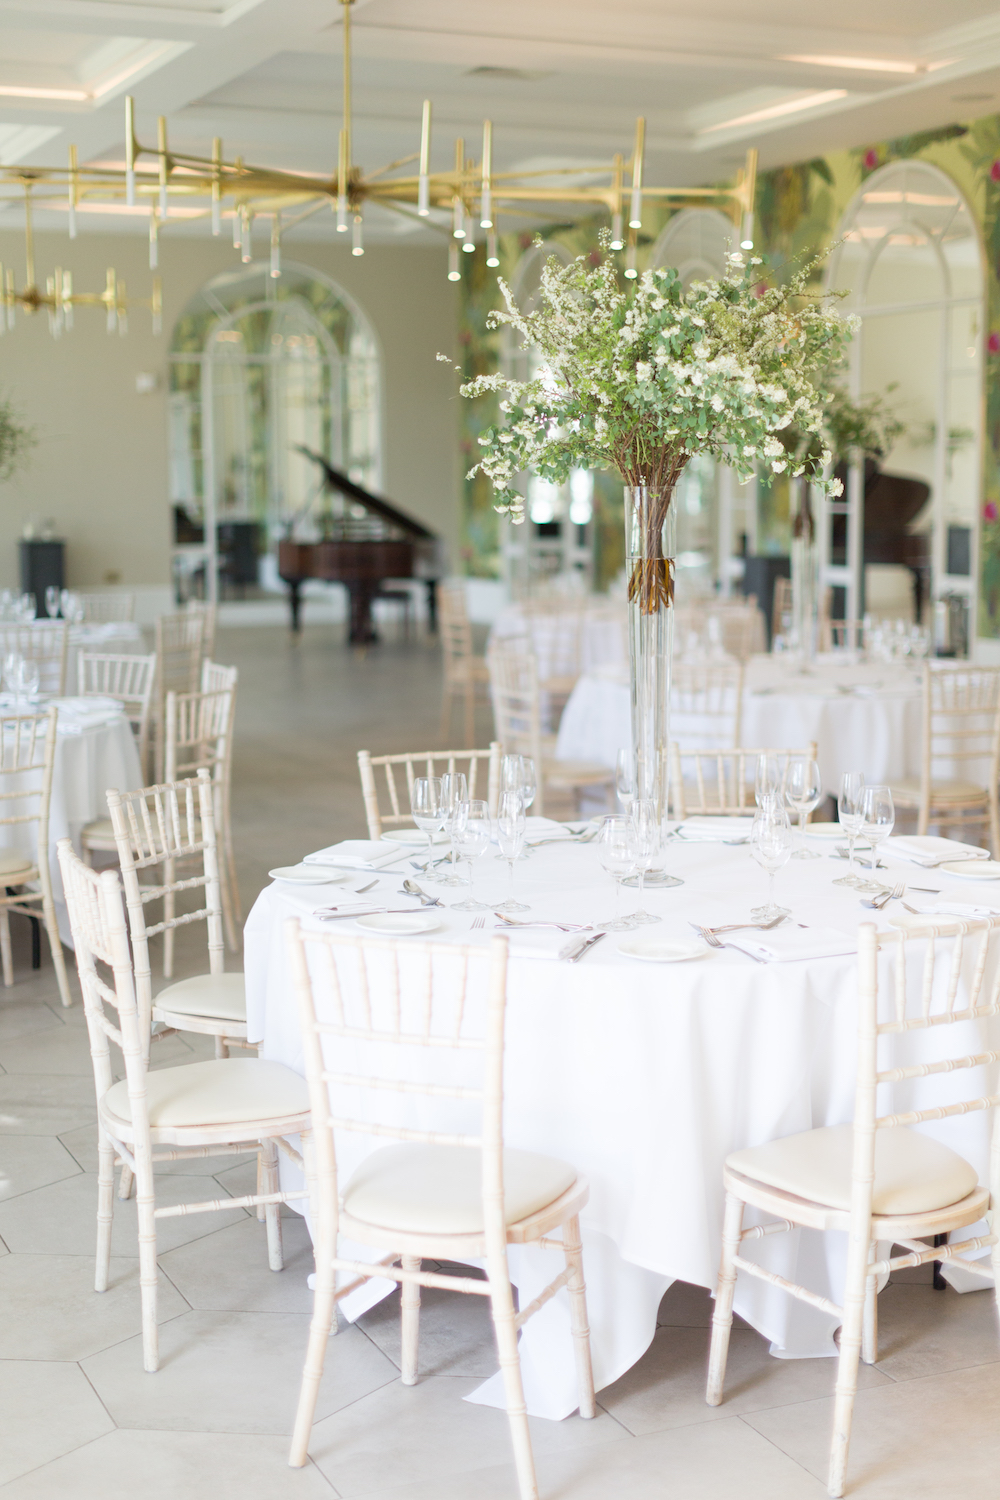 43 | Deer Park | Sarah Hannam Photography | Devon Wedding Venue | Lamare London.jpg